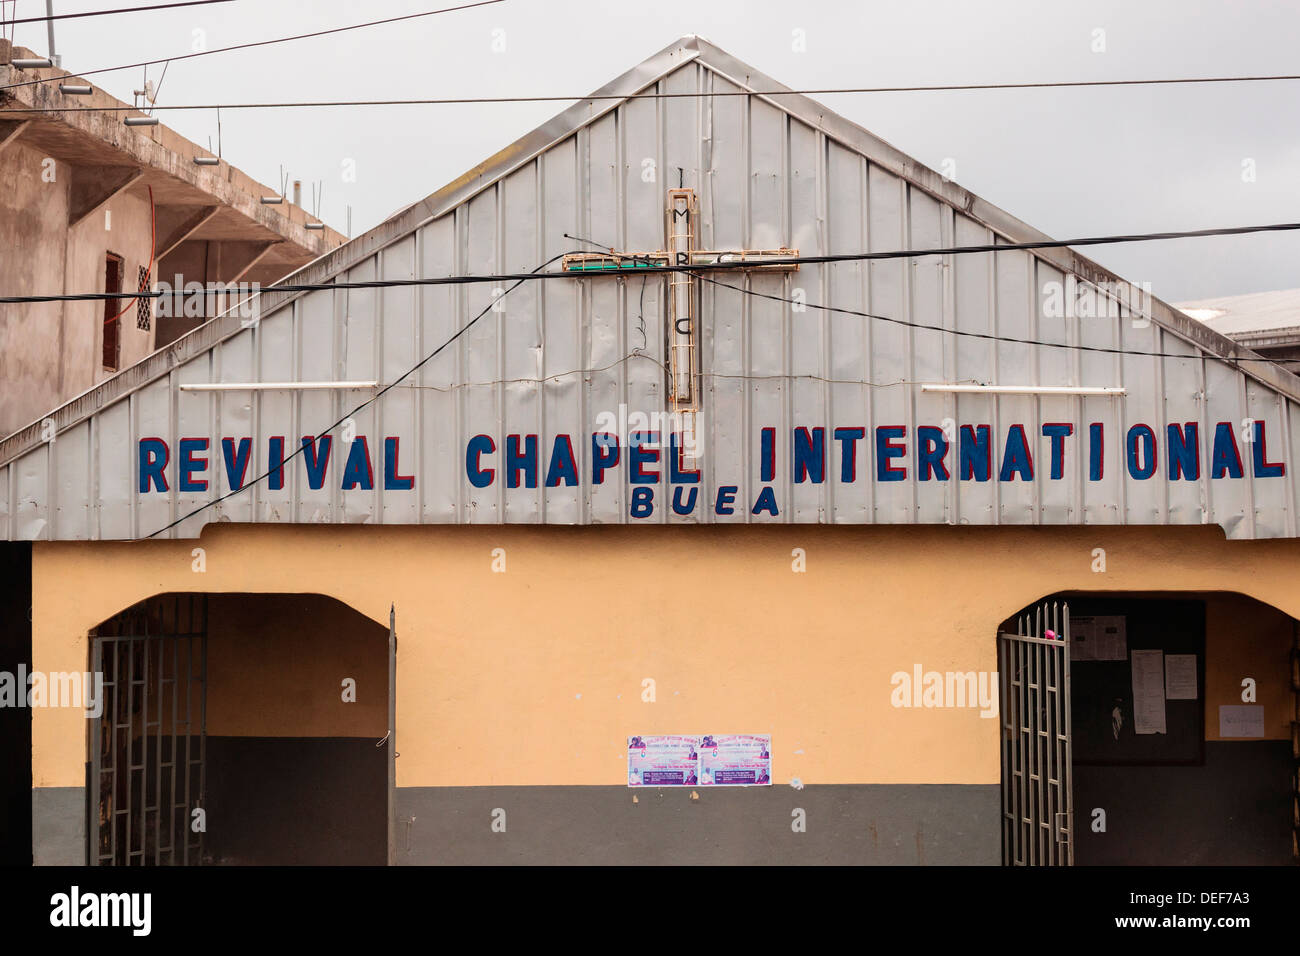 Africa, Cameroon, Buea. Revival Chapel International. - Stock Image